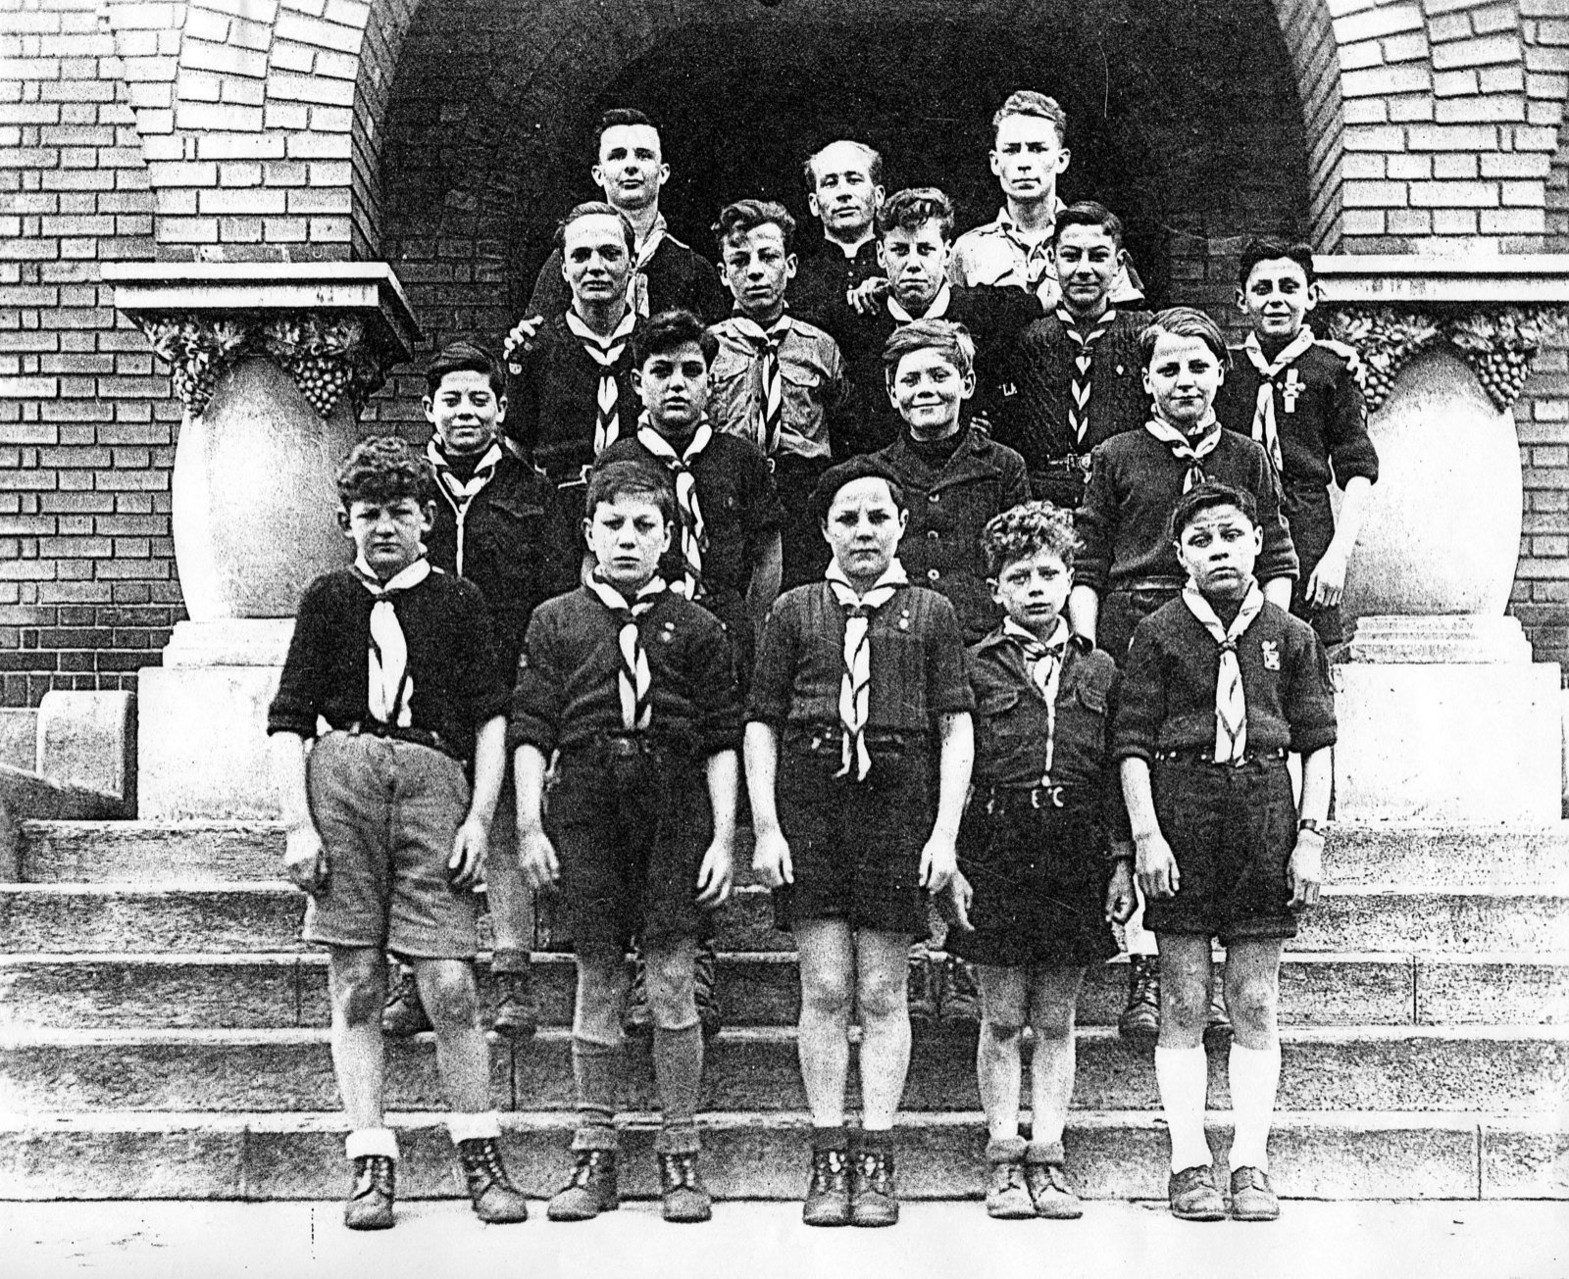 TROUPE SCOUT (1950)